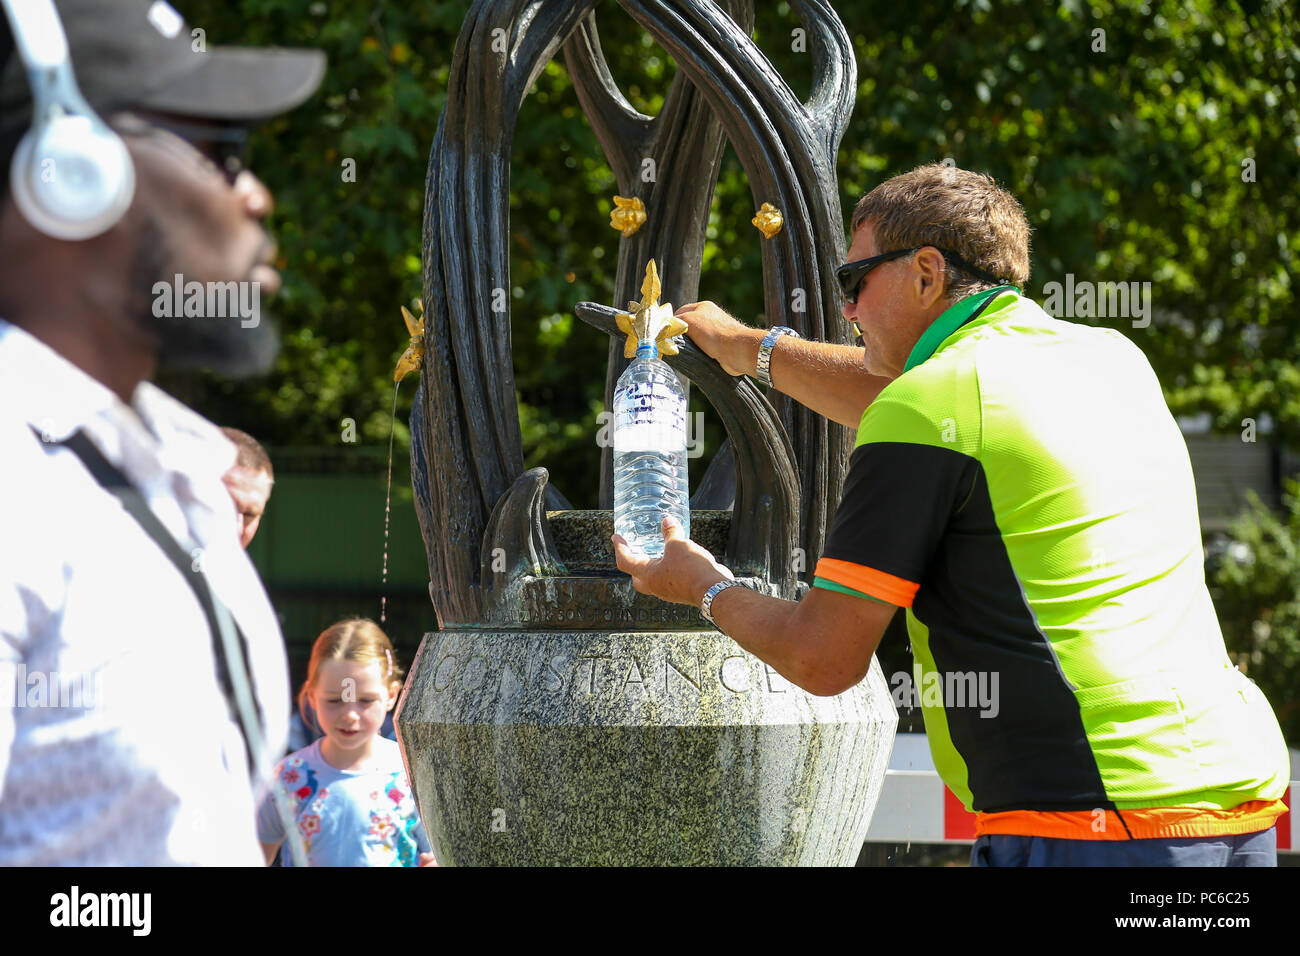 Green Park. London. UK 1 Aug 2018 - A man fill water bottles from the drinking fountain in Green Park on a sunny and warm day in the capital. According to The Met Office the heatwave is to return after a brief drop in temperature and rainfall in the UK as 32 degrees celsius is forecasted for the coming weekend.   Credit: Dinendra Haria/Alamy Live News Stock Photo